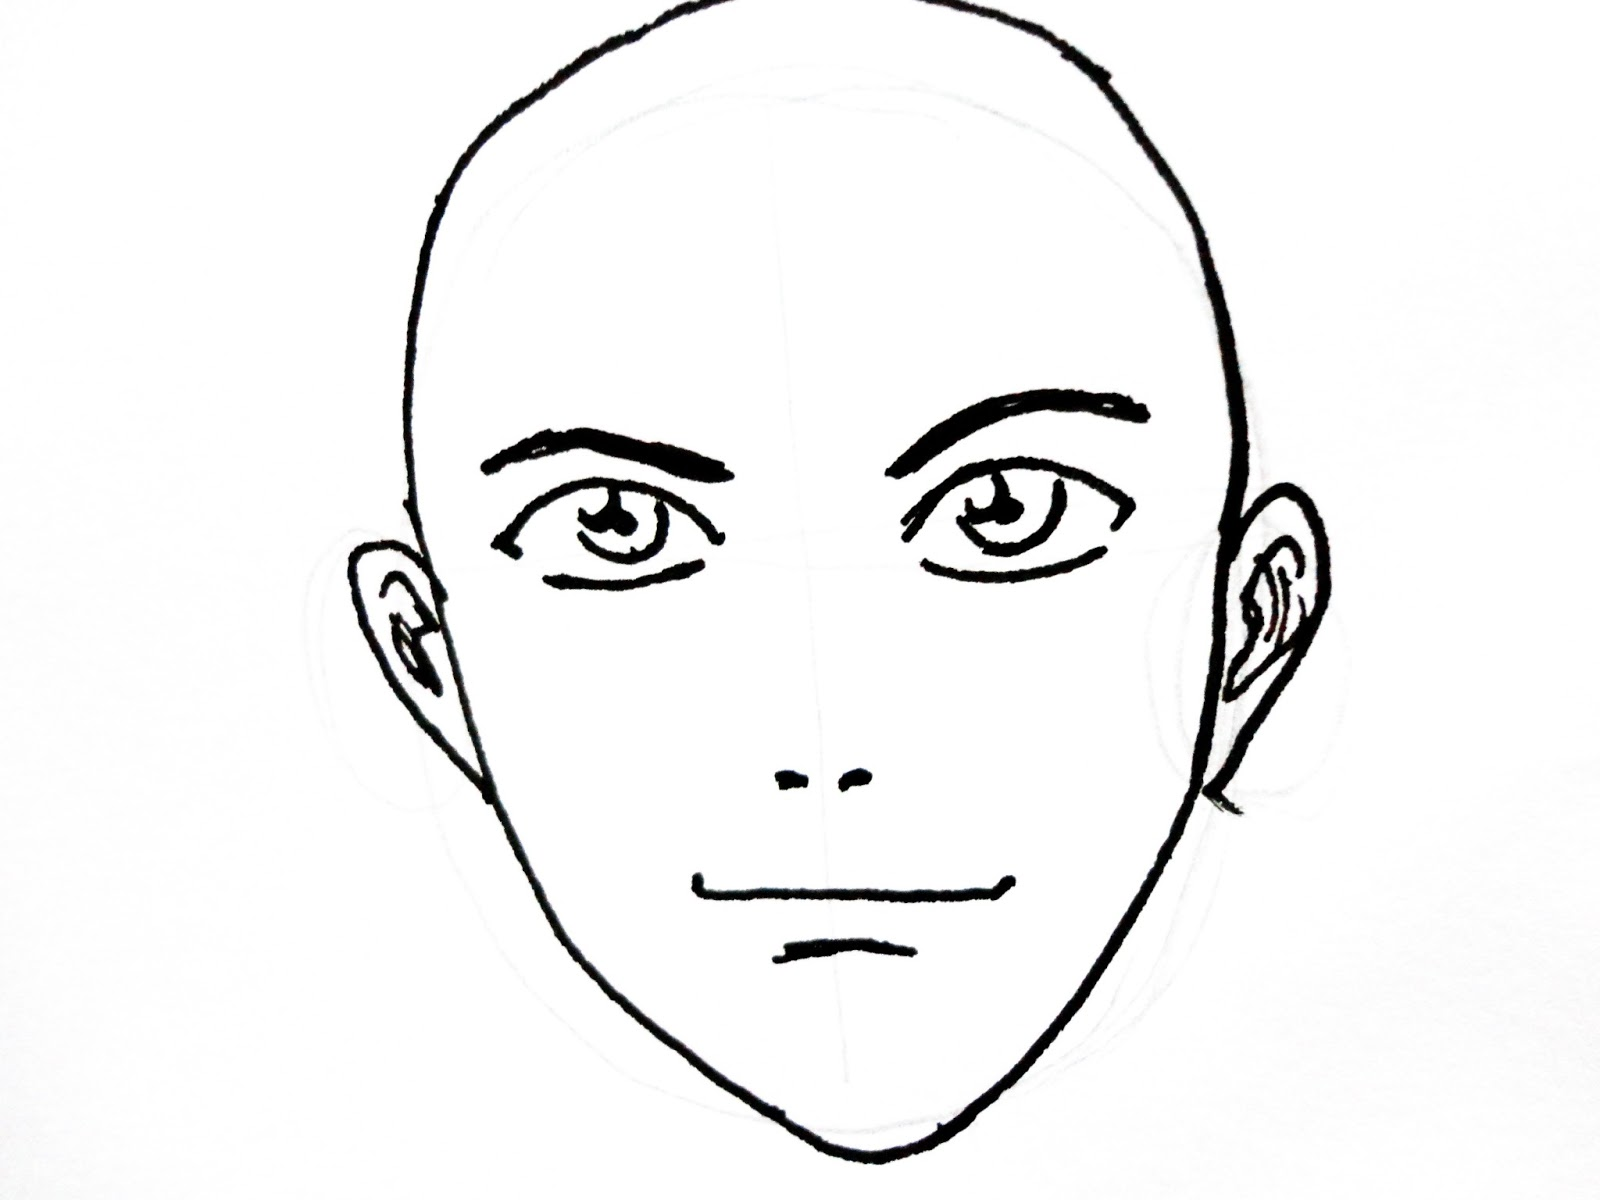 Line Drawing Cartoon Face : Cartoon party drawing face